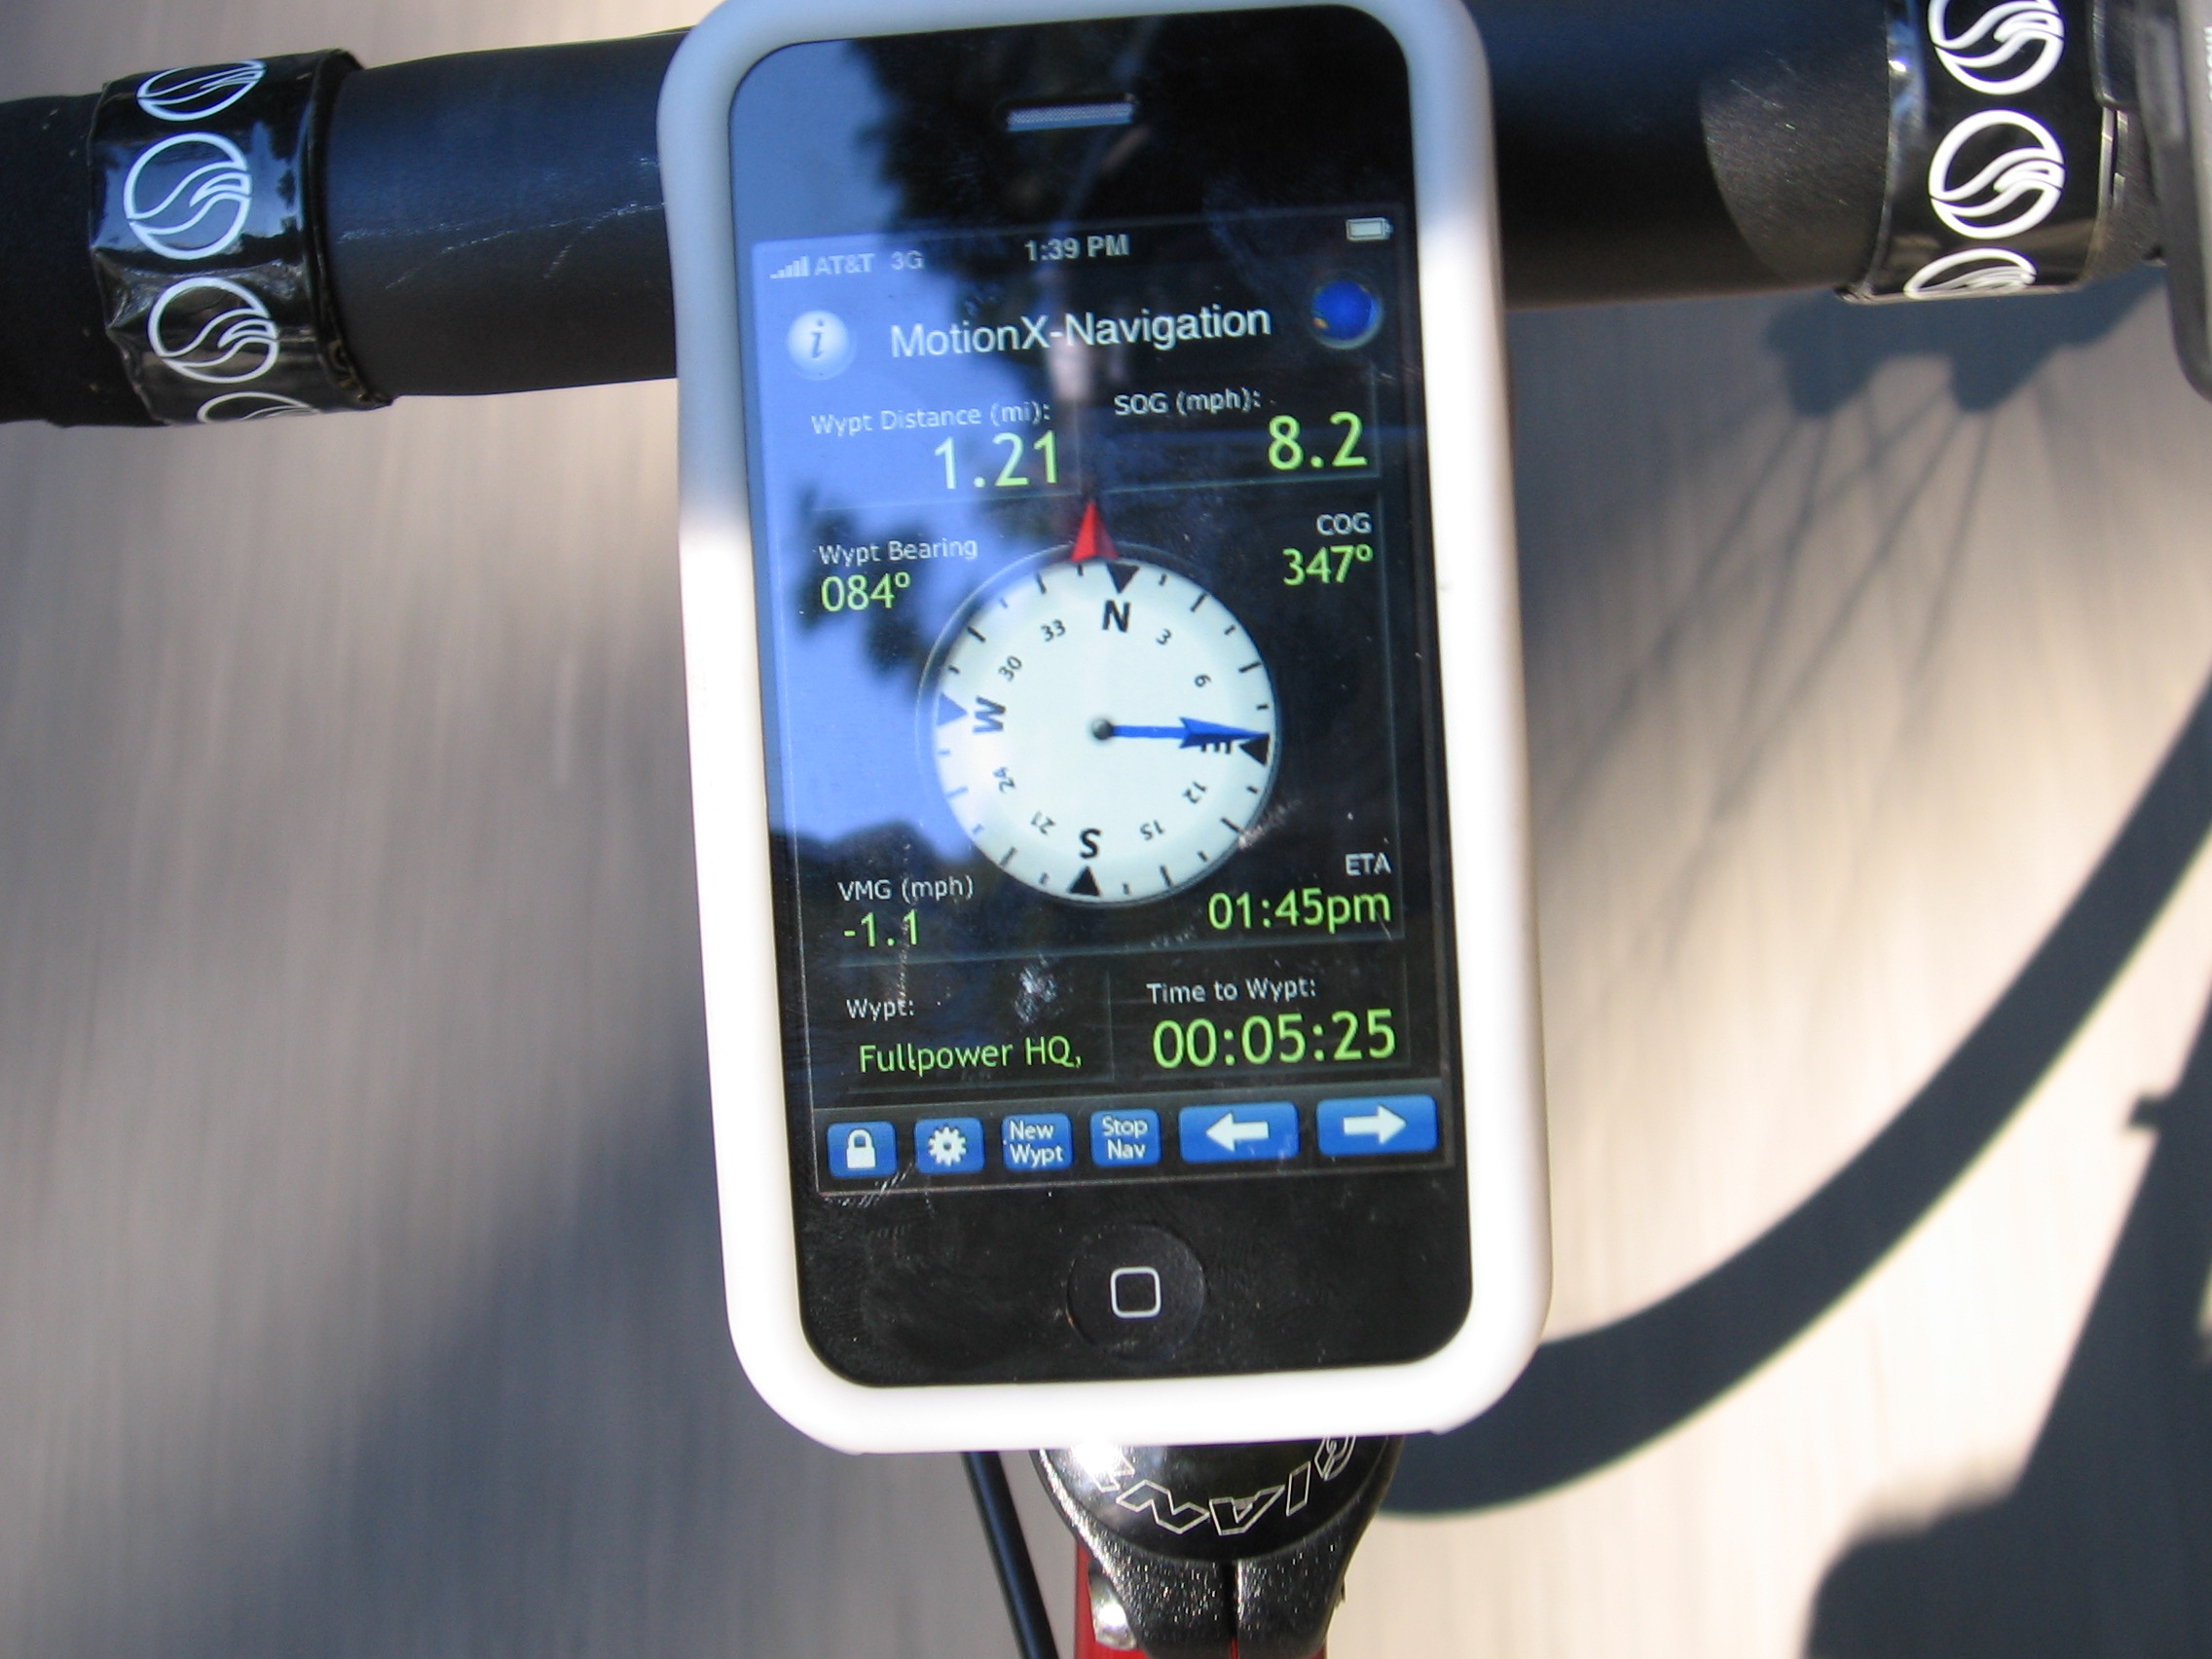 GPS receivers are now integrated in many mobile phones.